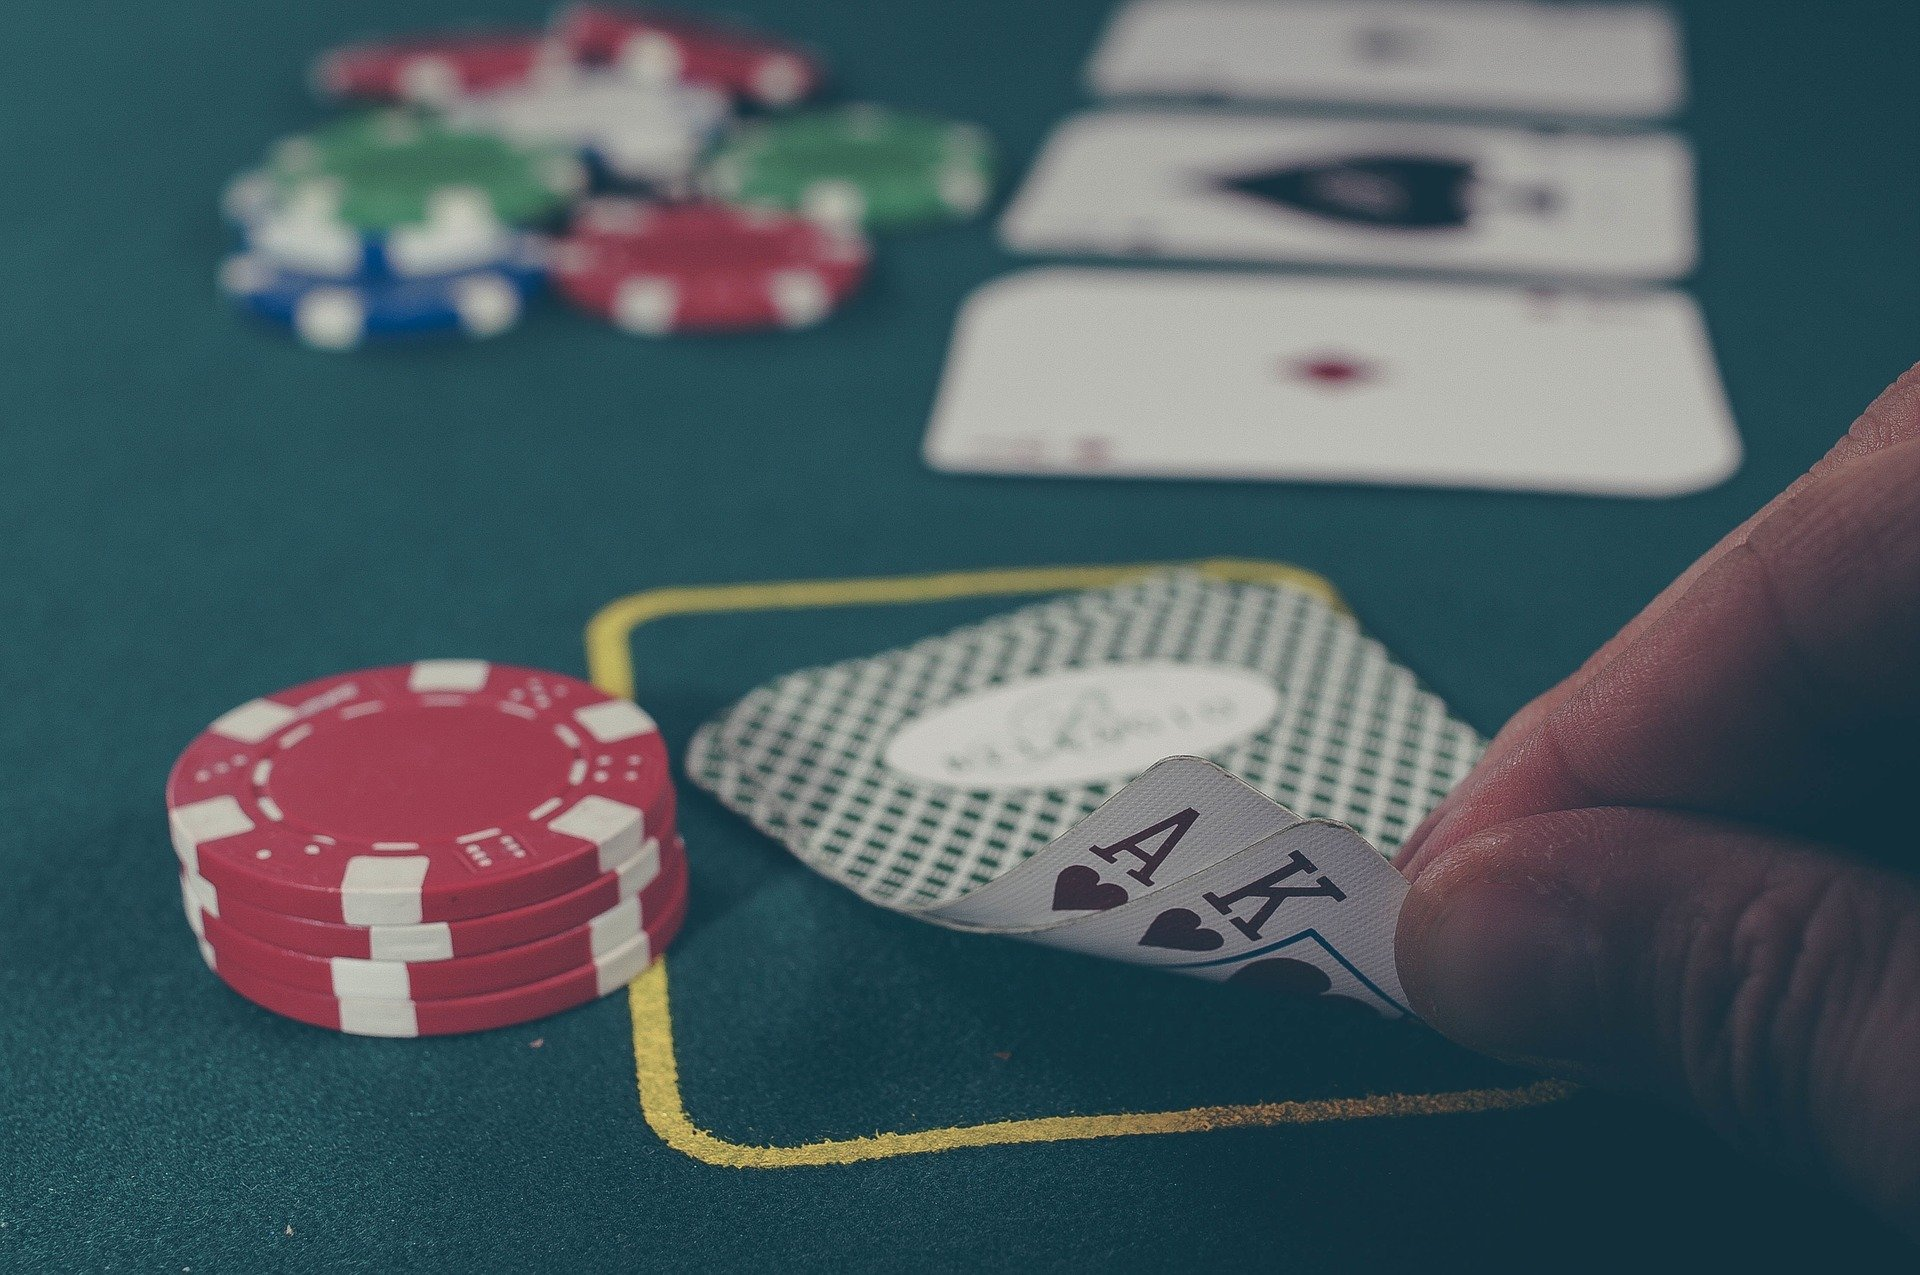 iGaming: Online blackjack, how to play and win